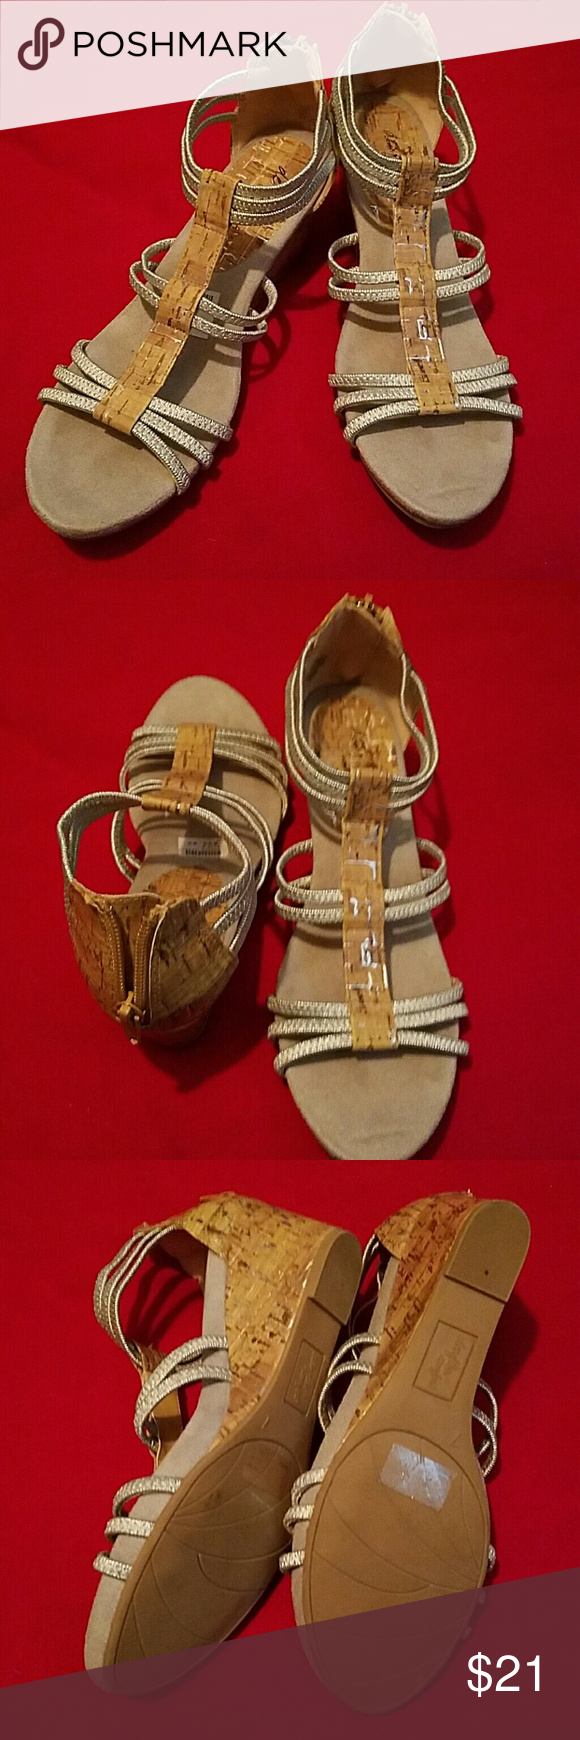 Cute wedge heels size 7 These Shoes are silver and cork wedges size 7. They were worn once and are in like-new condition and still have the tags on them. The wedge is approximately 2 inches and they zip up the back. Deflect Comfort   Shoes